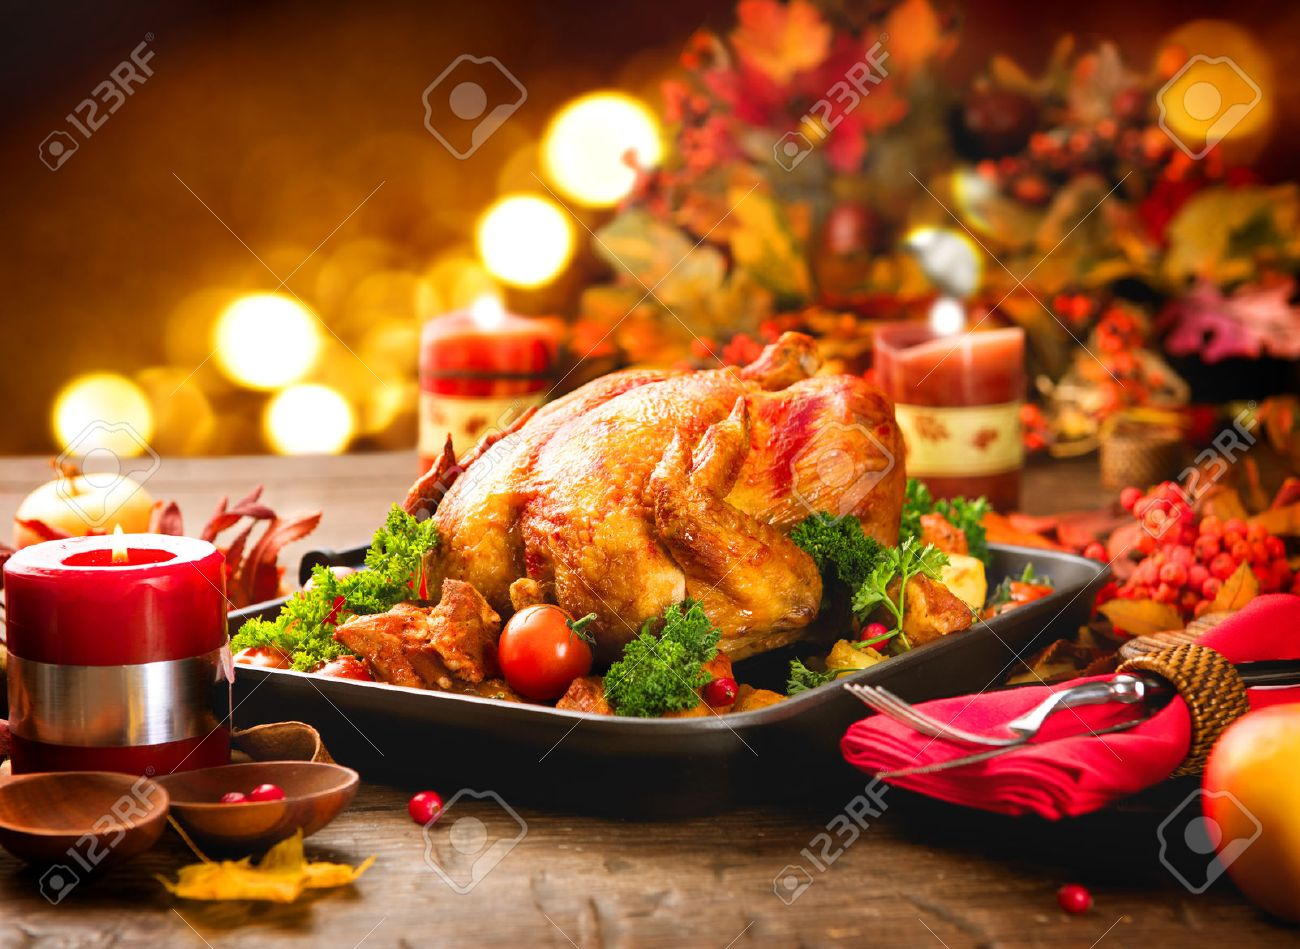 Thanksgiving dinner table served with turkey decorated with bright autumn leaves Stock Photo - 47901164 & thanksgiving dinner table images u2013 Loris Decoration